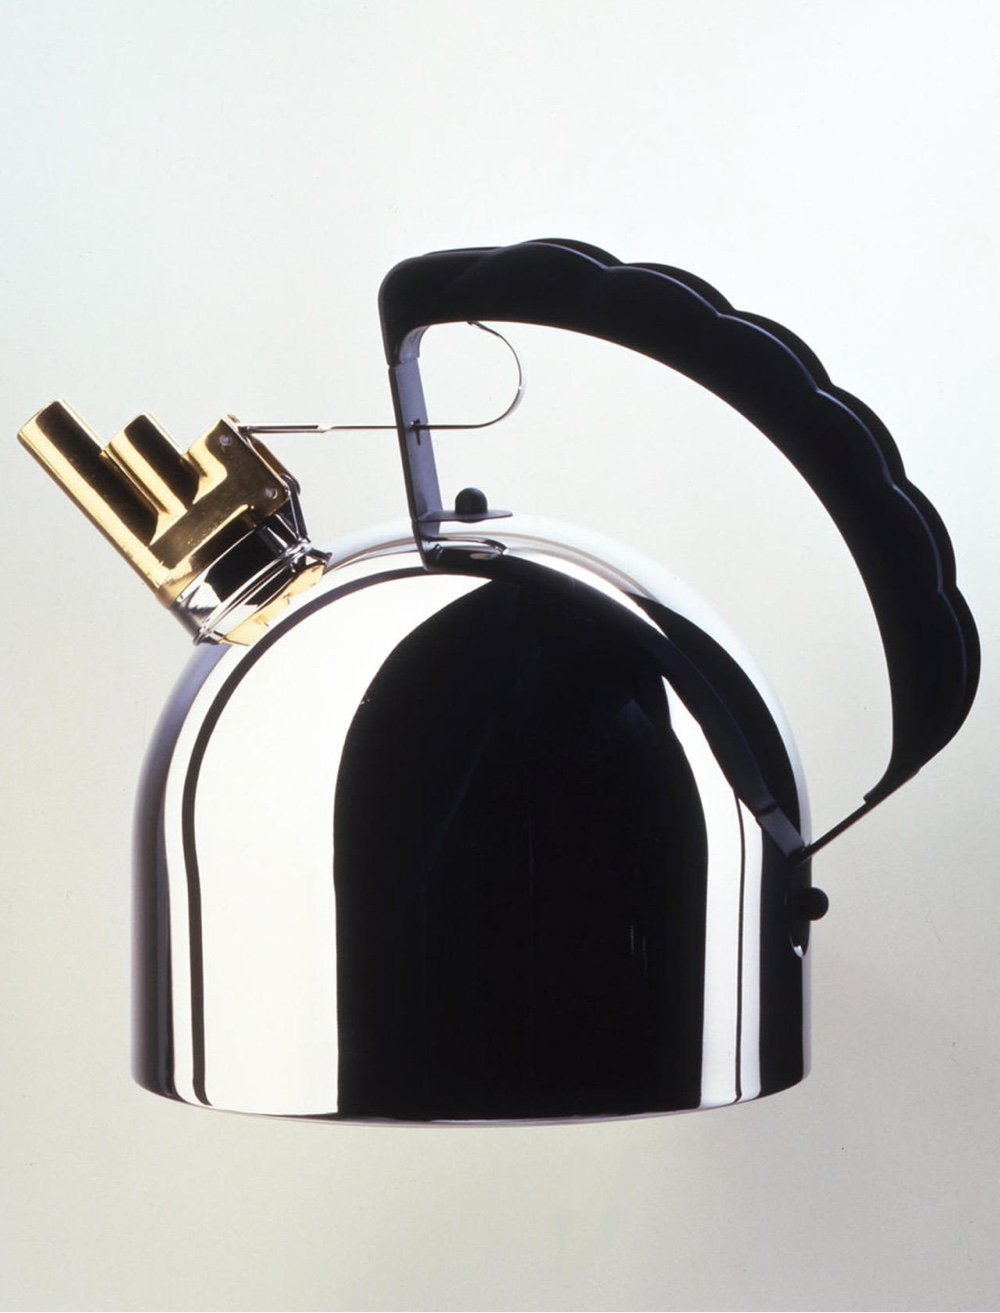 9091 (1983) kettle for Alessi.Image courtesy of Richard Sapper.